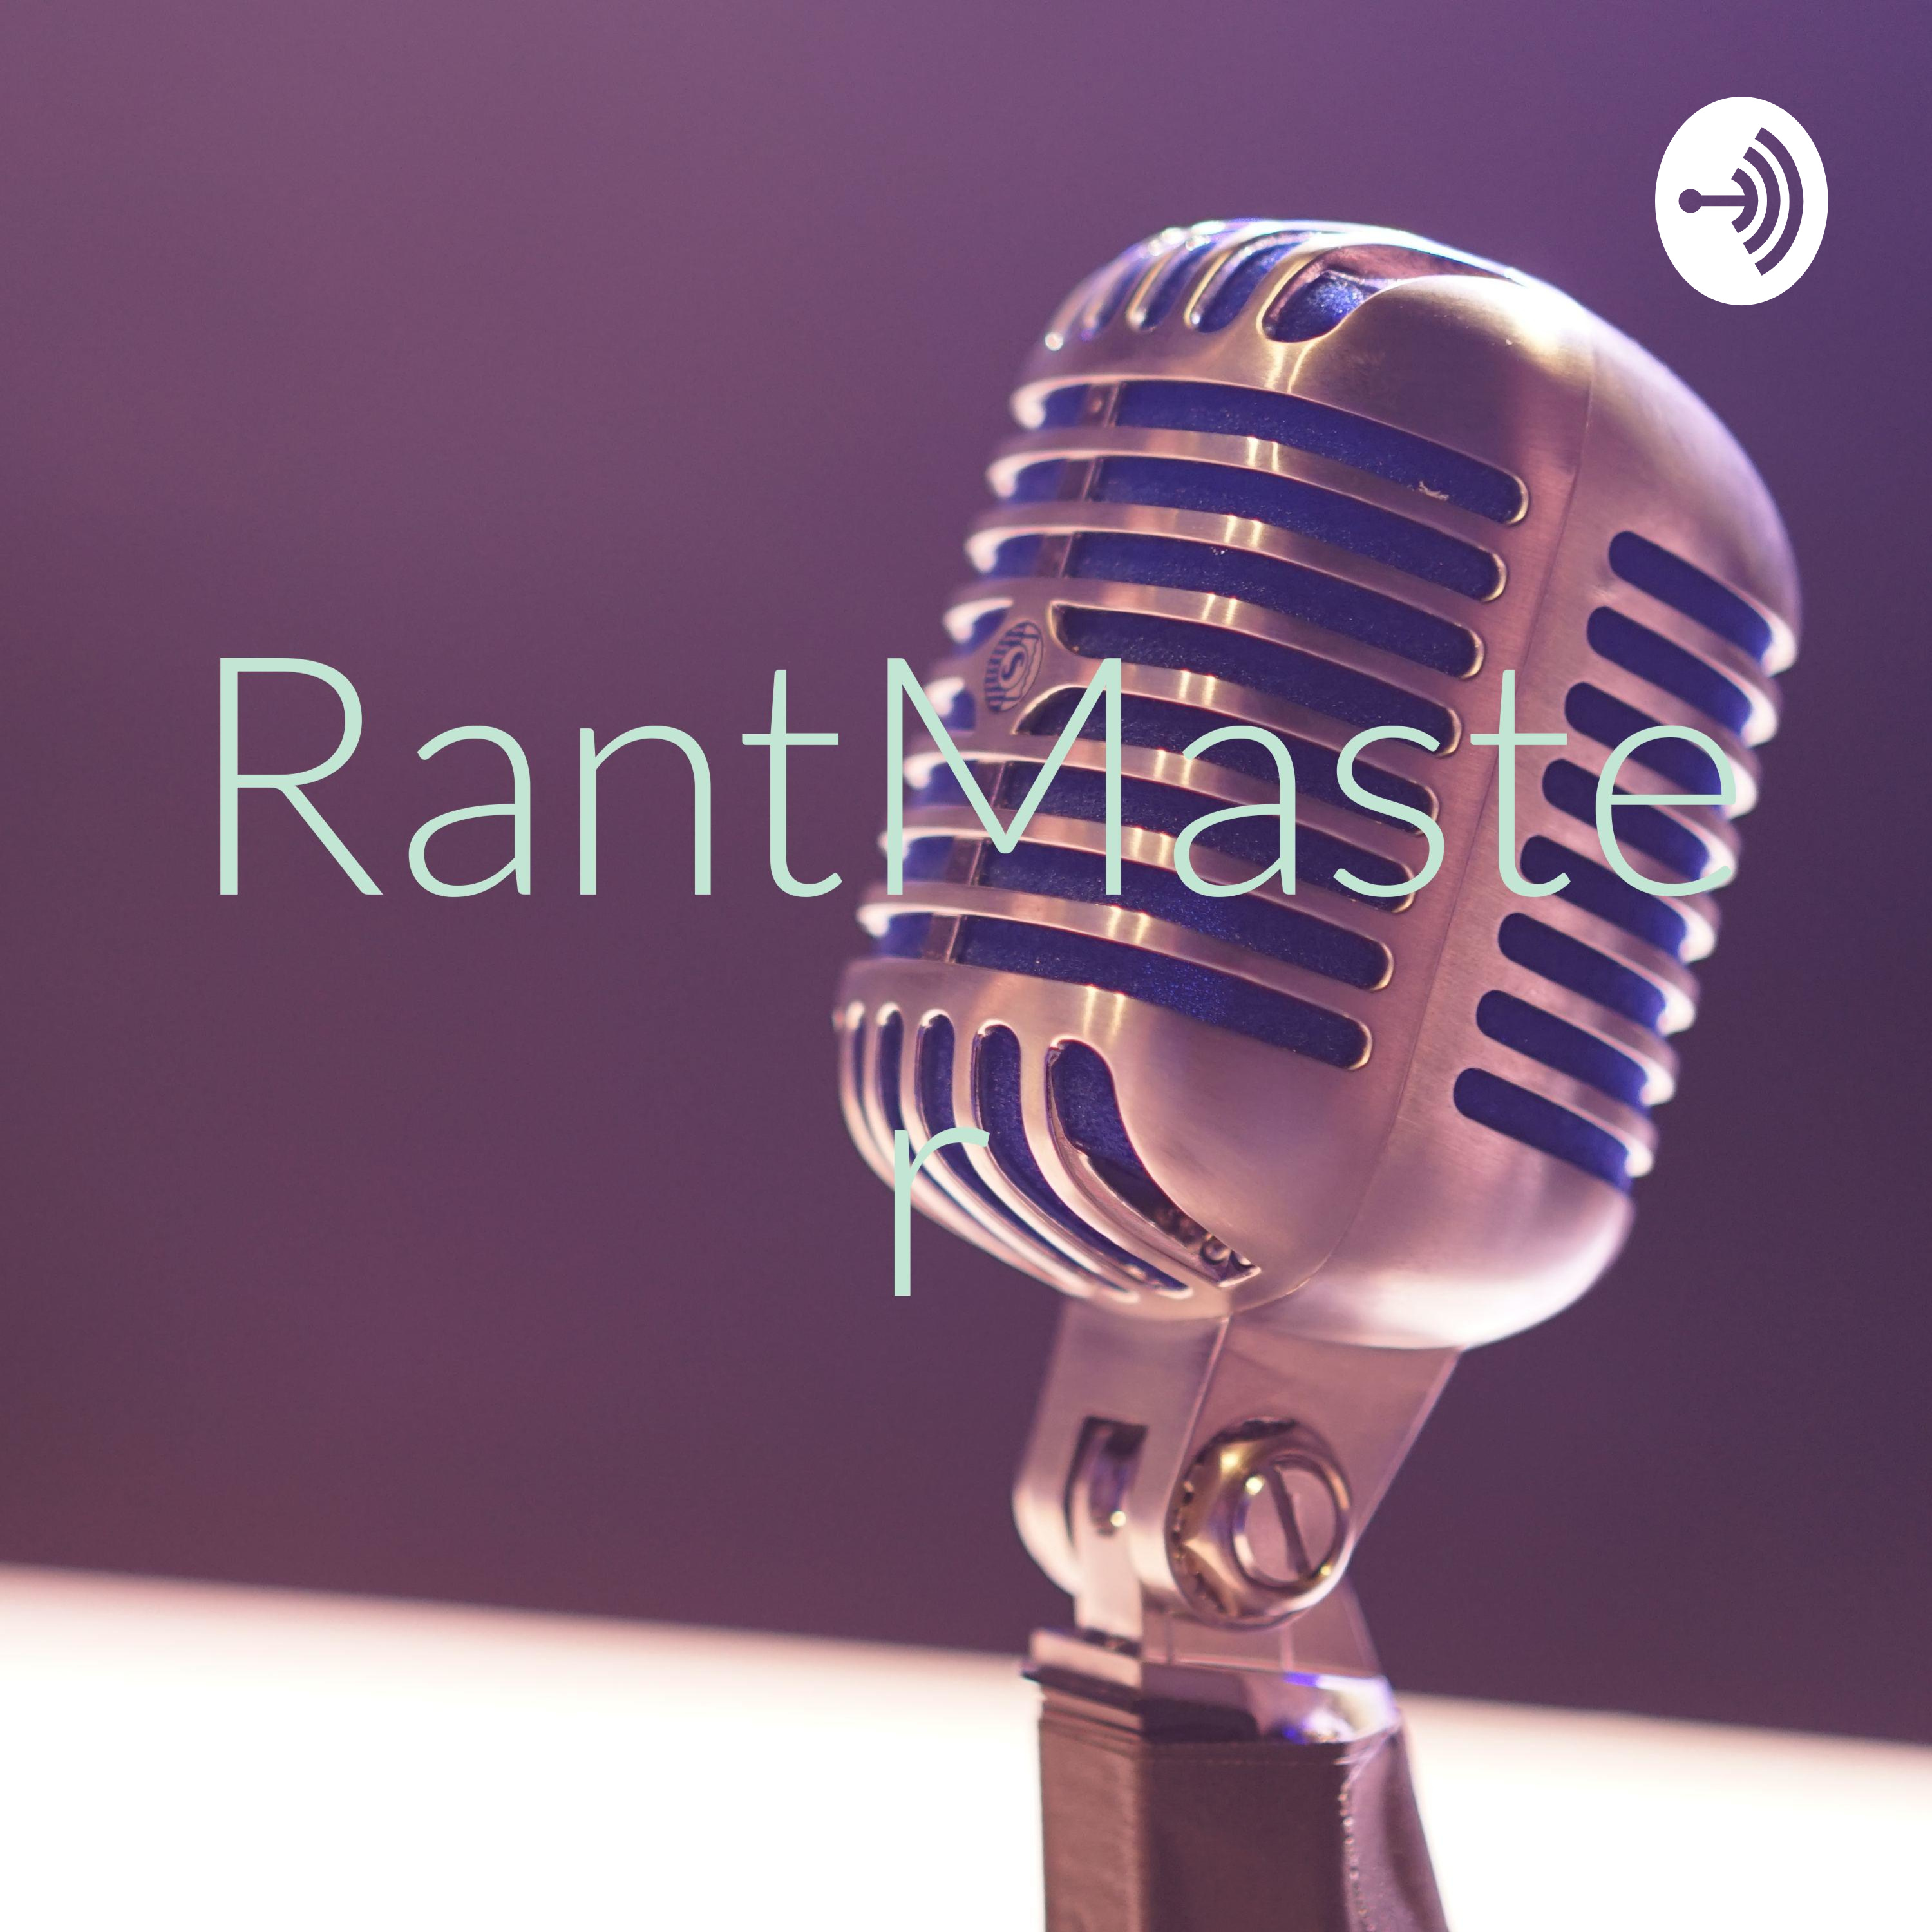 RantMaster: An Introduction